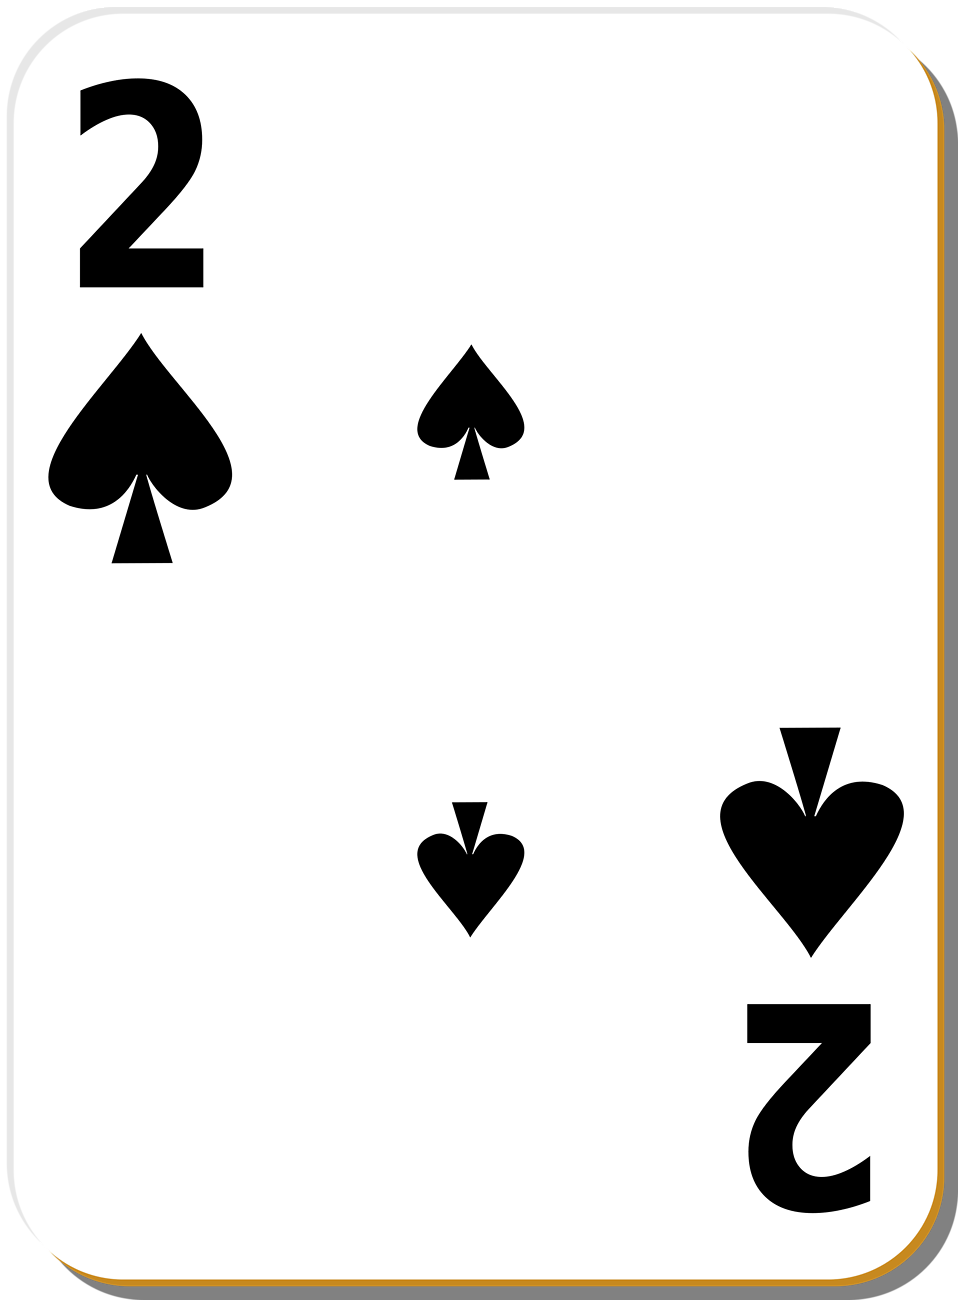 Card free stock photo illustration of a two of spades playing card